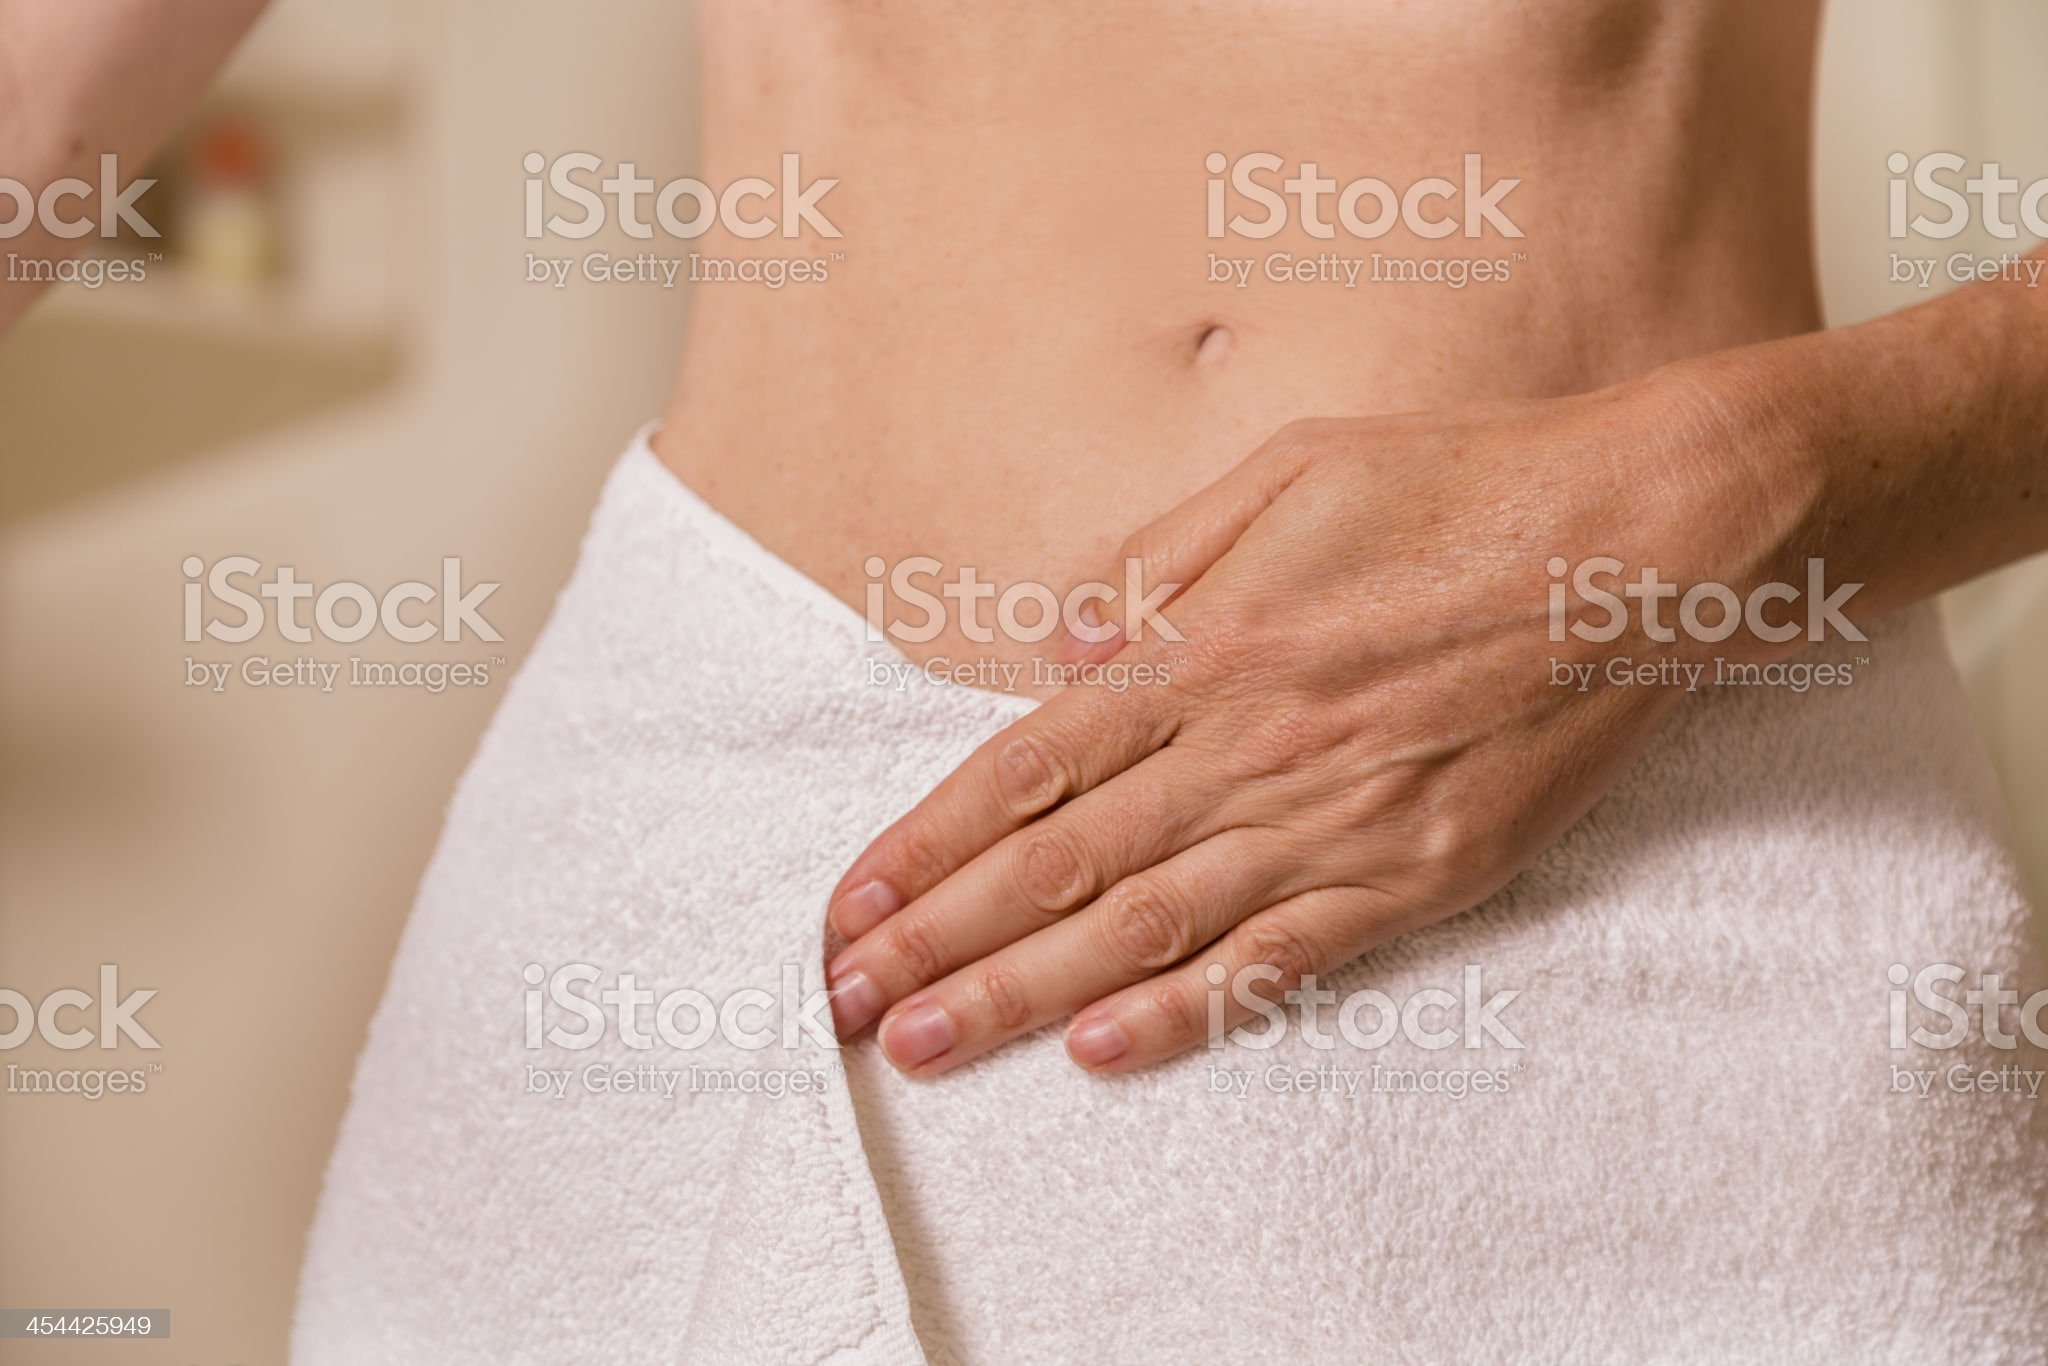 Healthy Lifestyle: Woman examining her body after a bath. royalty-free stock photo